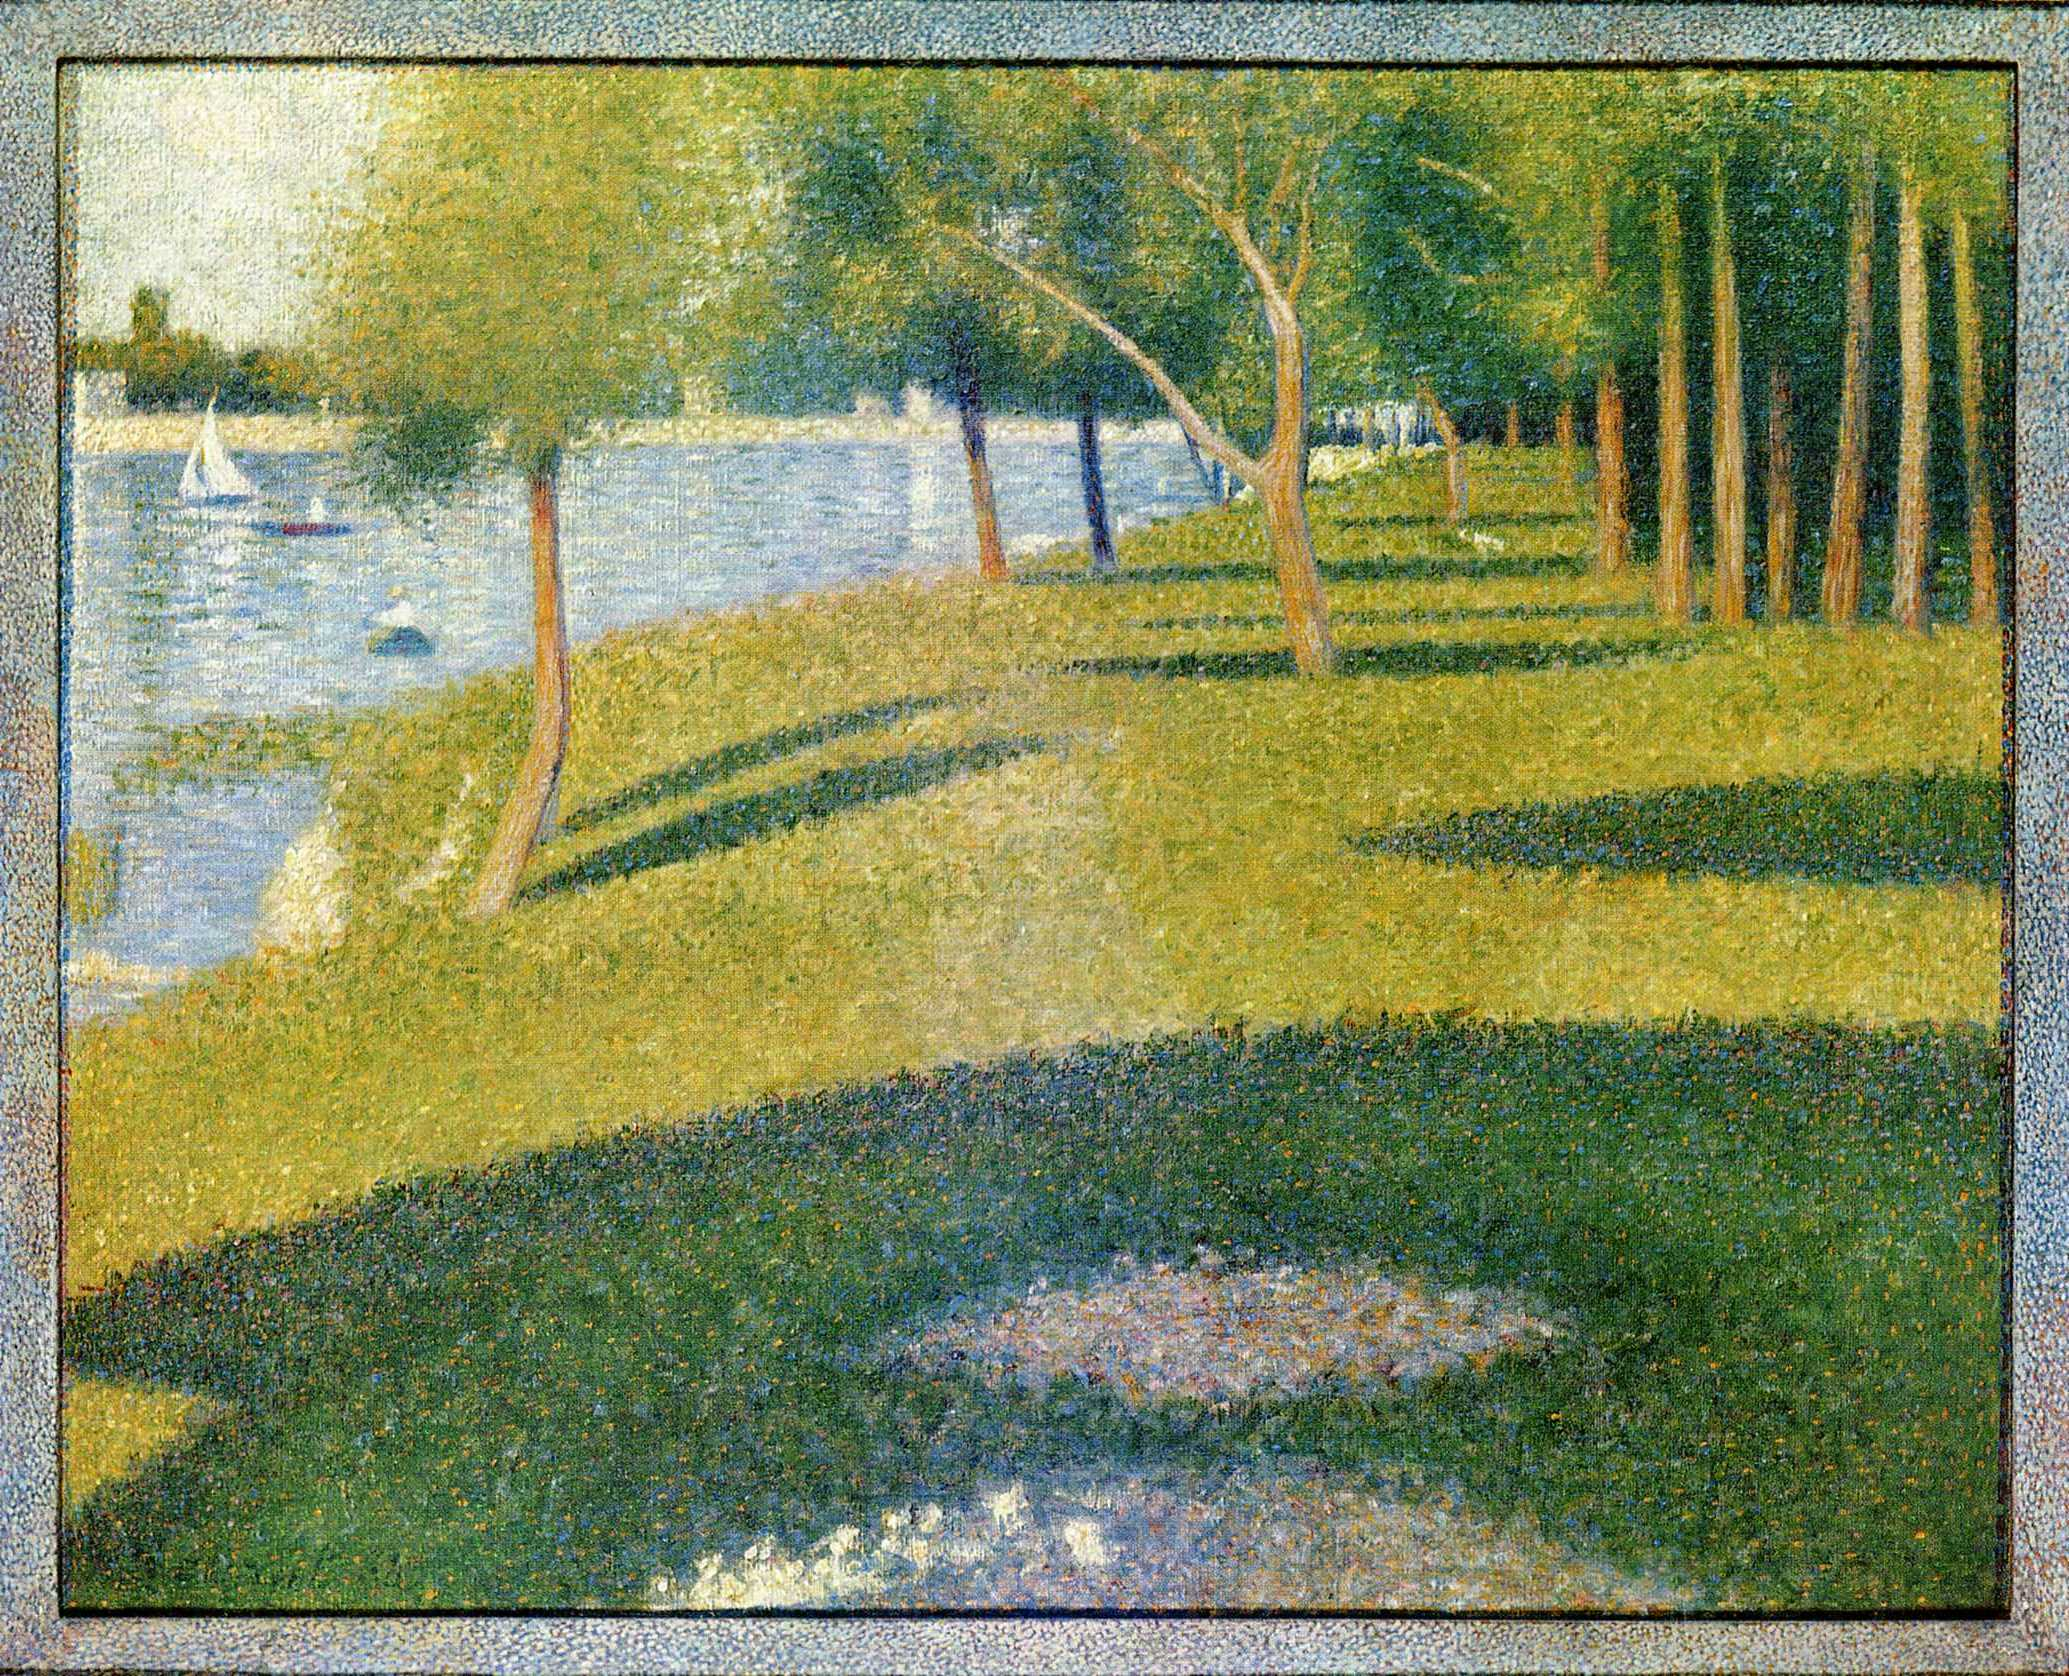 georges seurat Georges seurat: la grande jatte poster find poster reproductions of original works in the museum's collection and other prints at the met store.